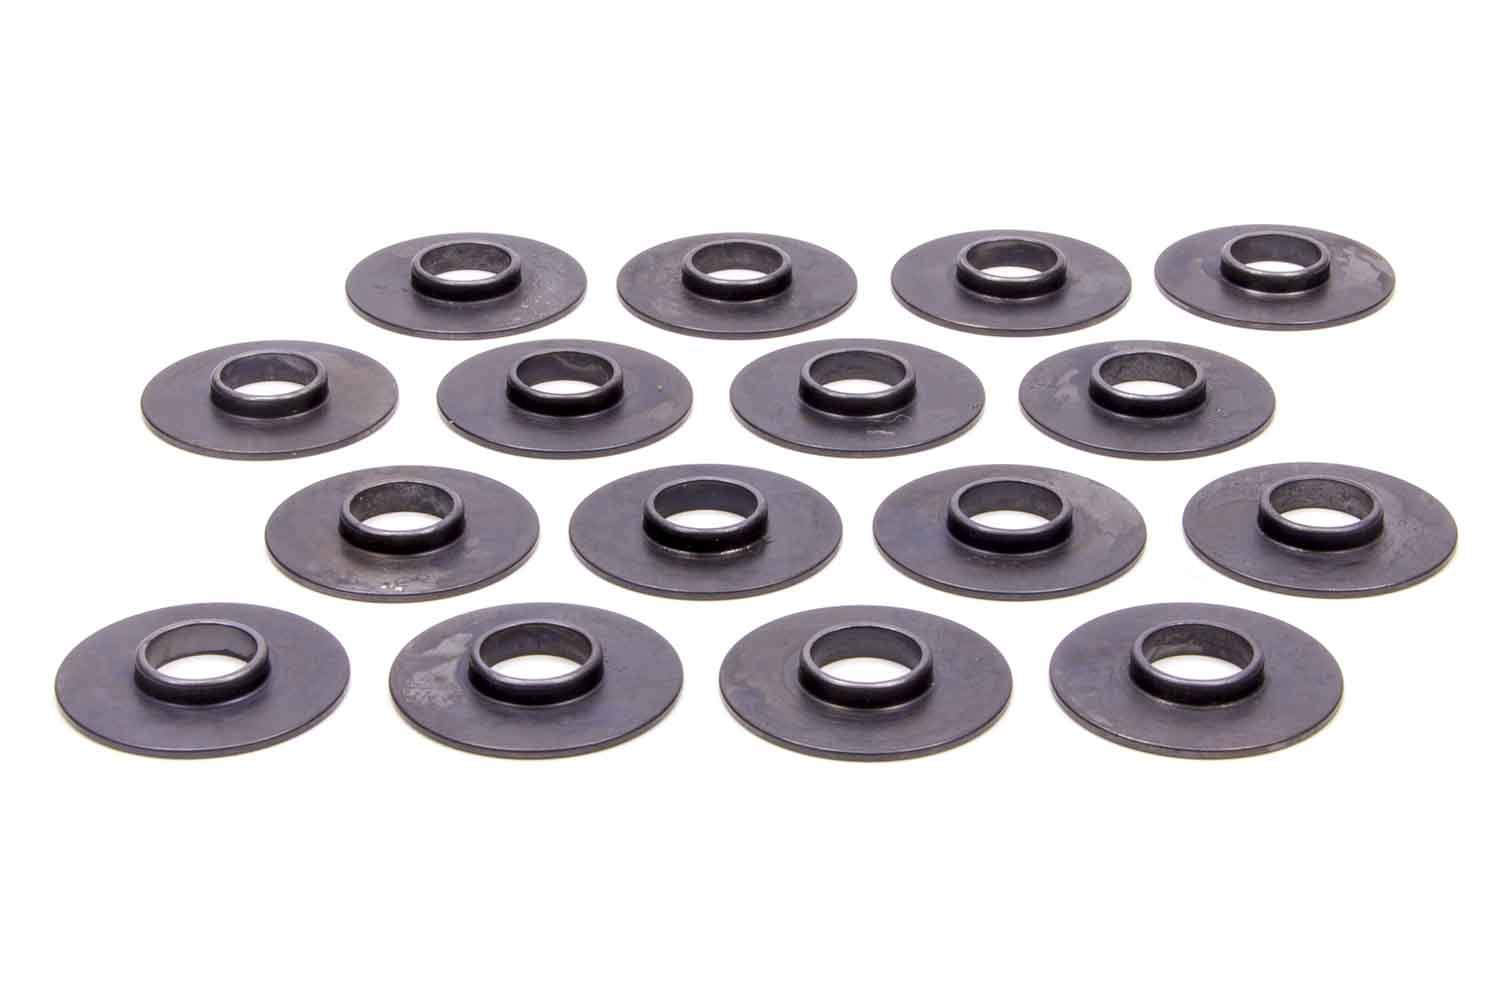 PAC Racing Springs PAC-S130 Valve Spring Locator, Inside, 0.060 in Thick, 1.550 in OD, 0.575 in ID, 0.820 in Spring ID, Chromoly, Set of 16